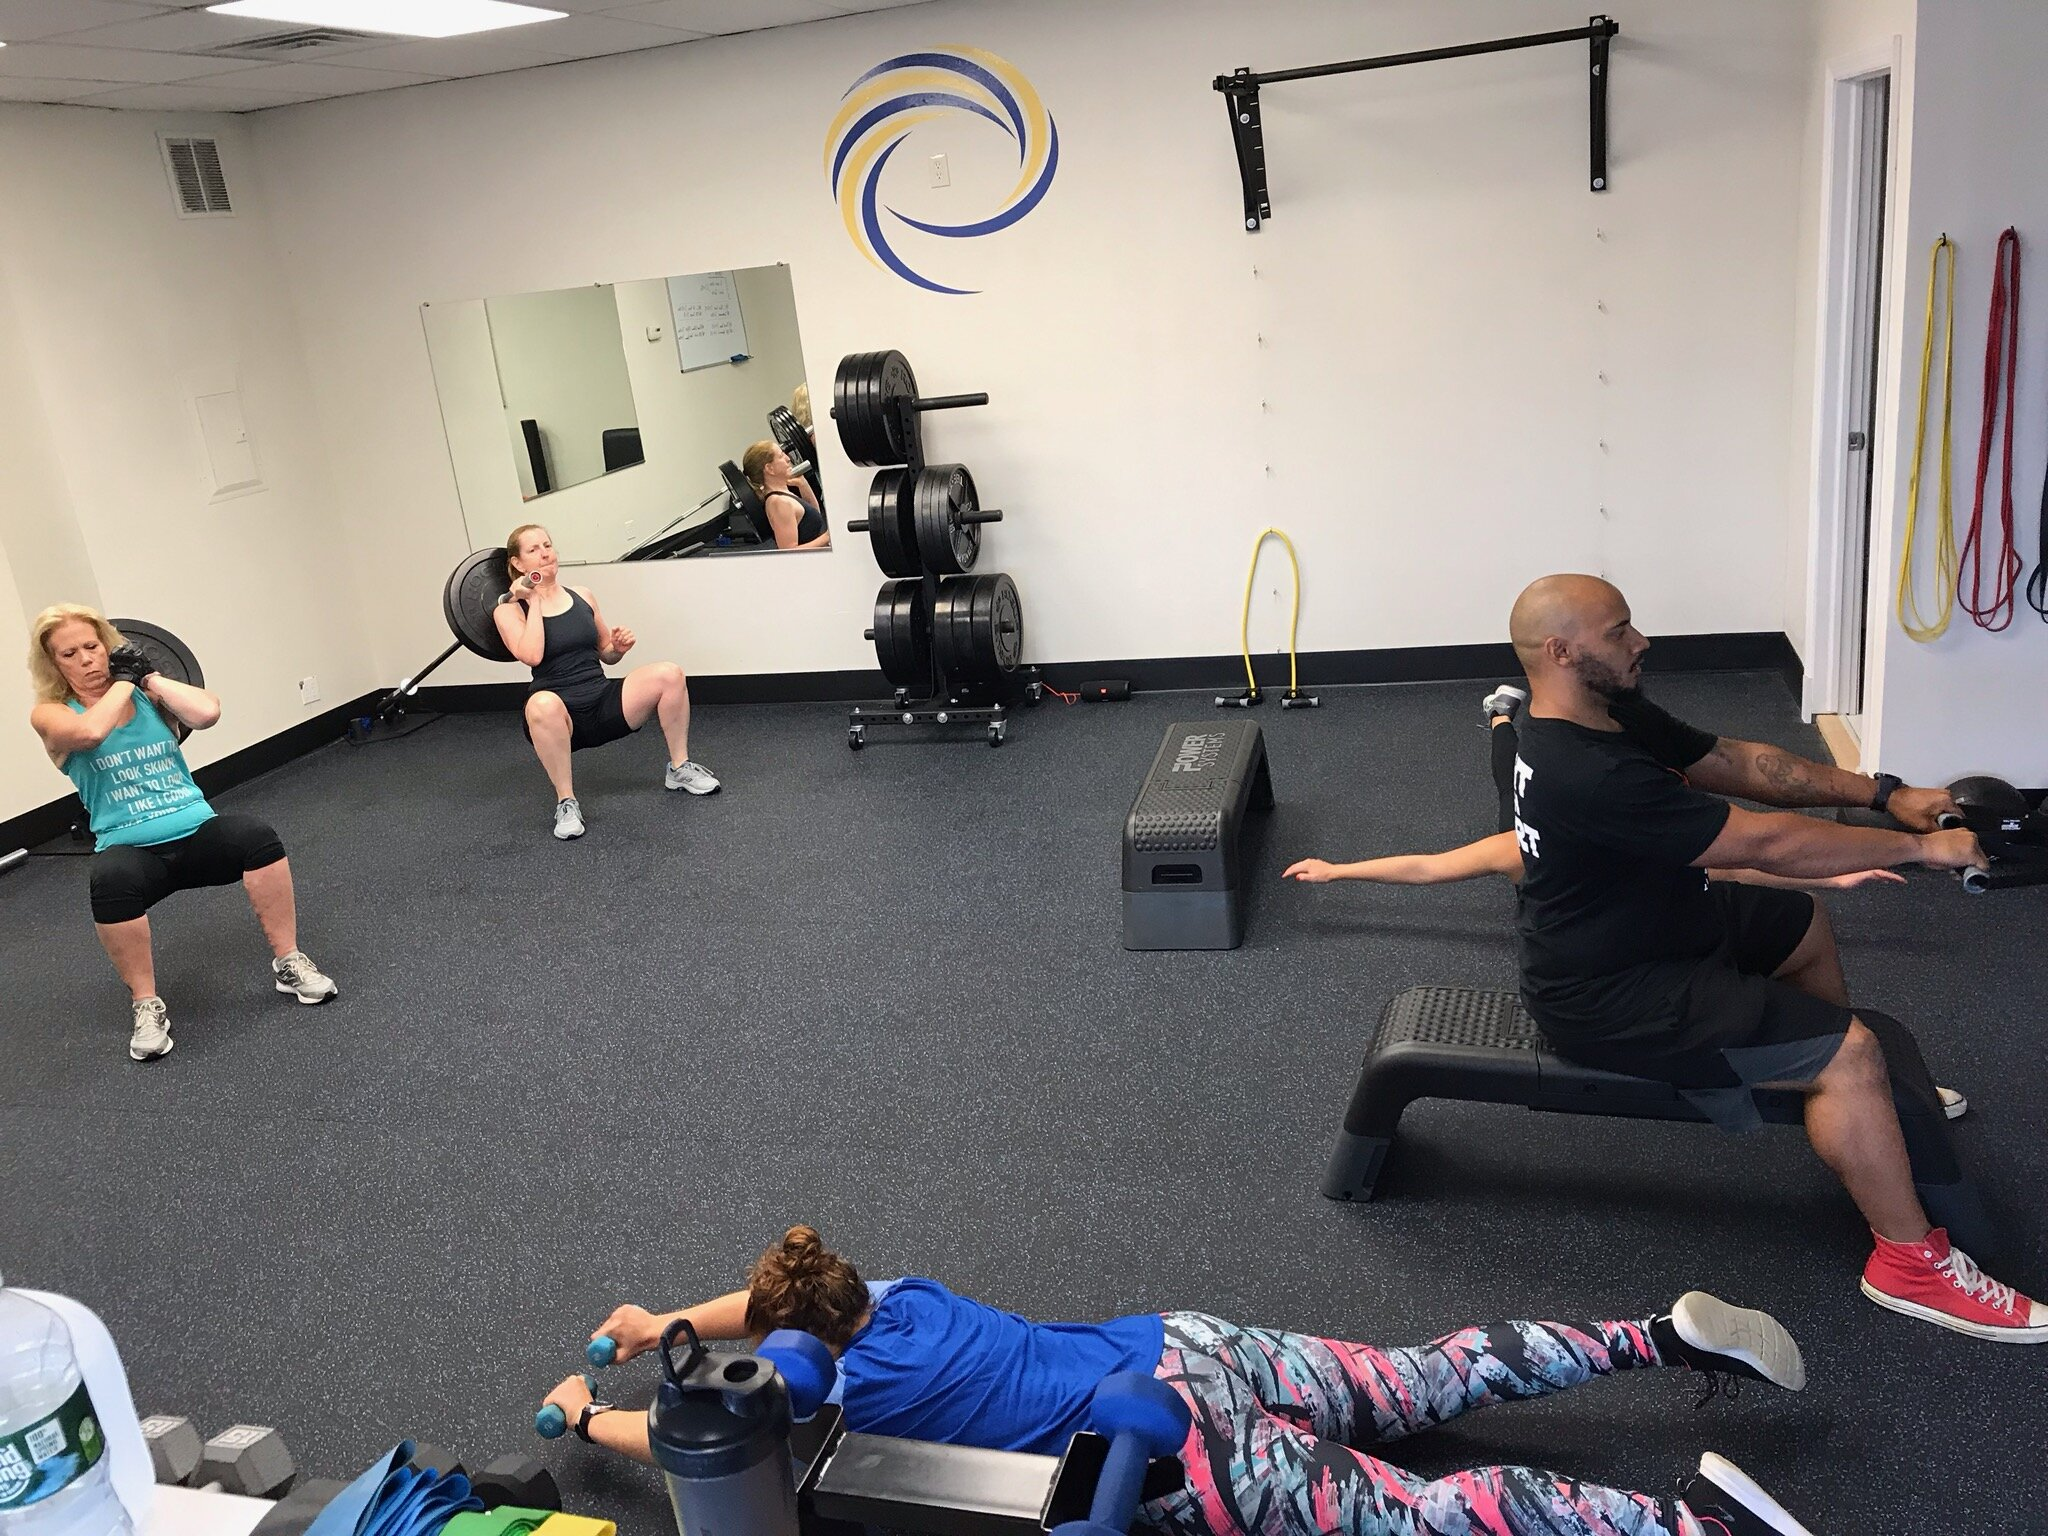 Group Fitness Classes - Affordable group fitness classes providing 1-hour high intensity and strength training movements that will push you past your fullest fitness potential. Through alternating obstacles and motivating coaches, you'll leave feeling accountable and accomplished.